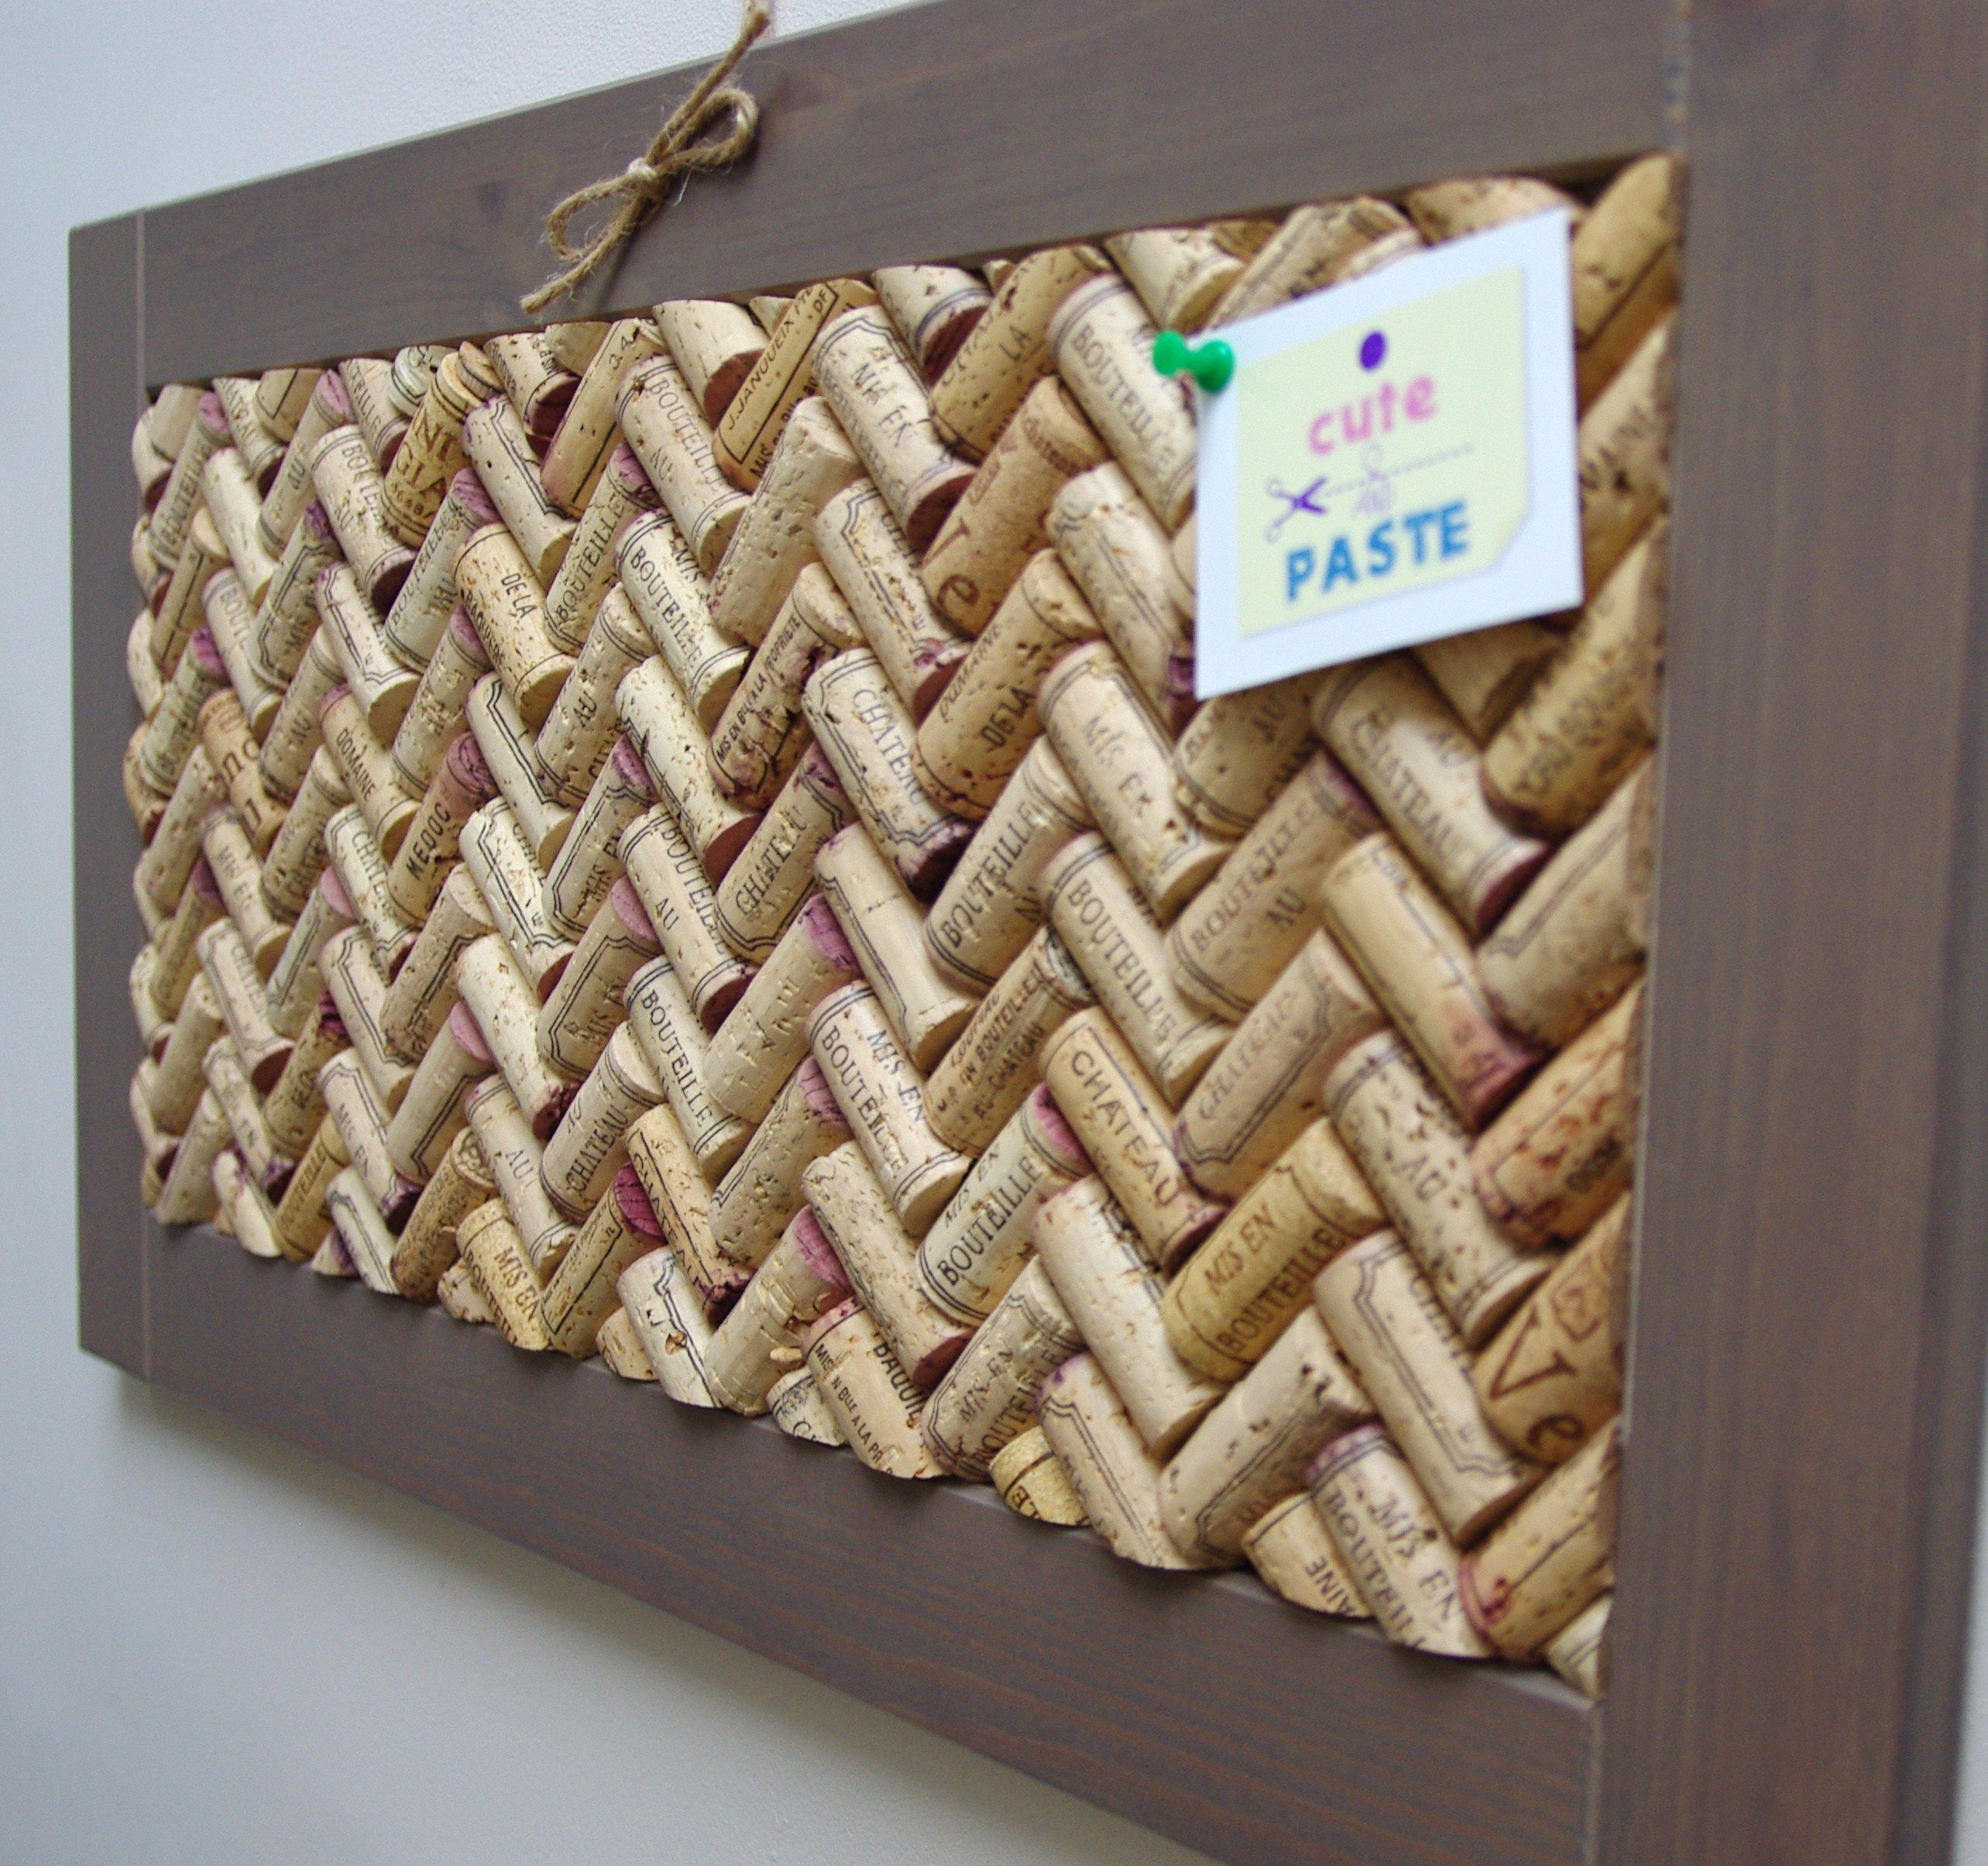 Cork Wedding Memory: Cork Boards With Wine Corks